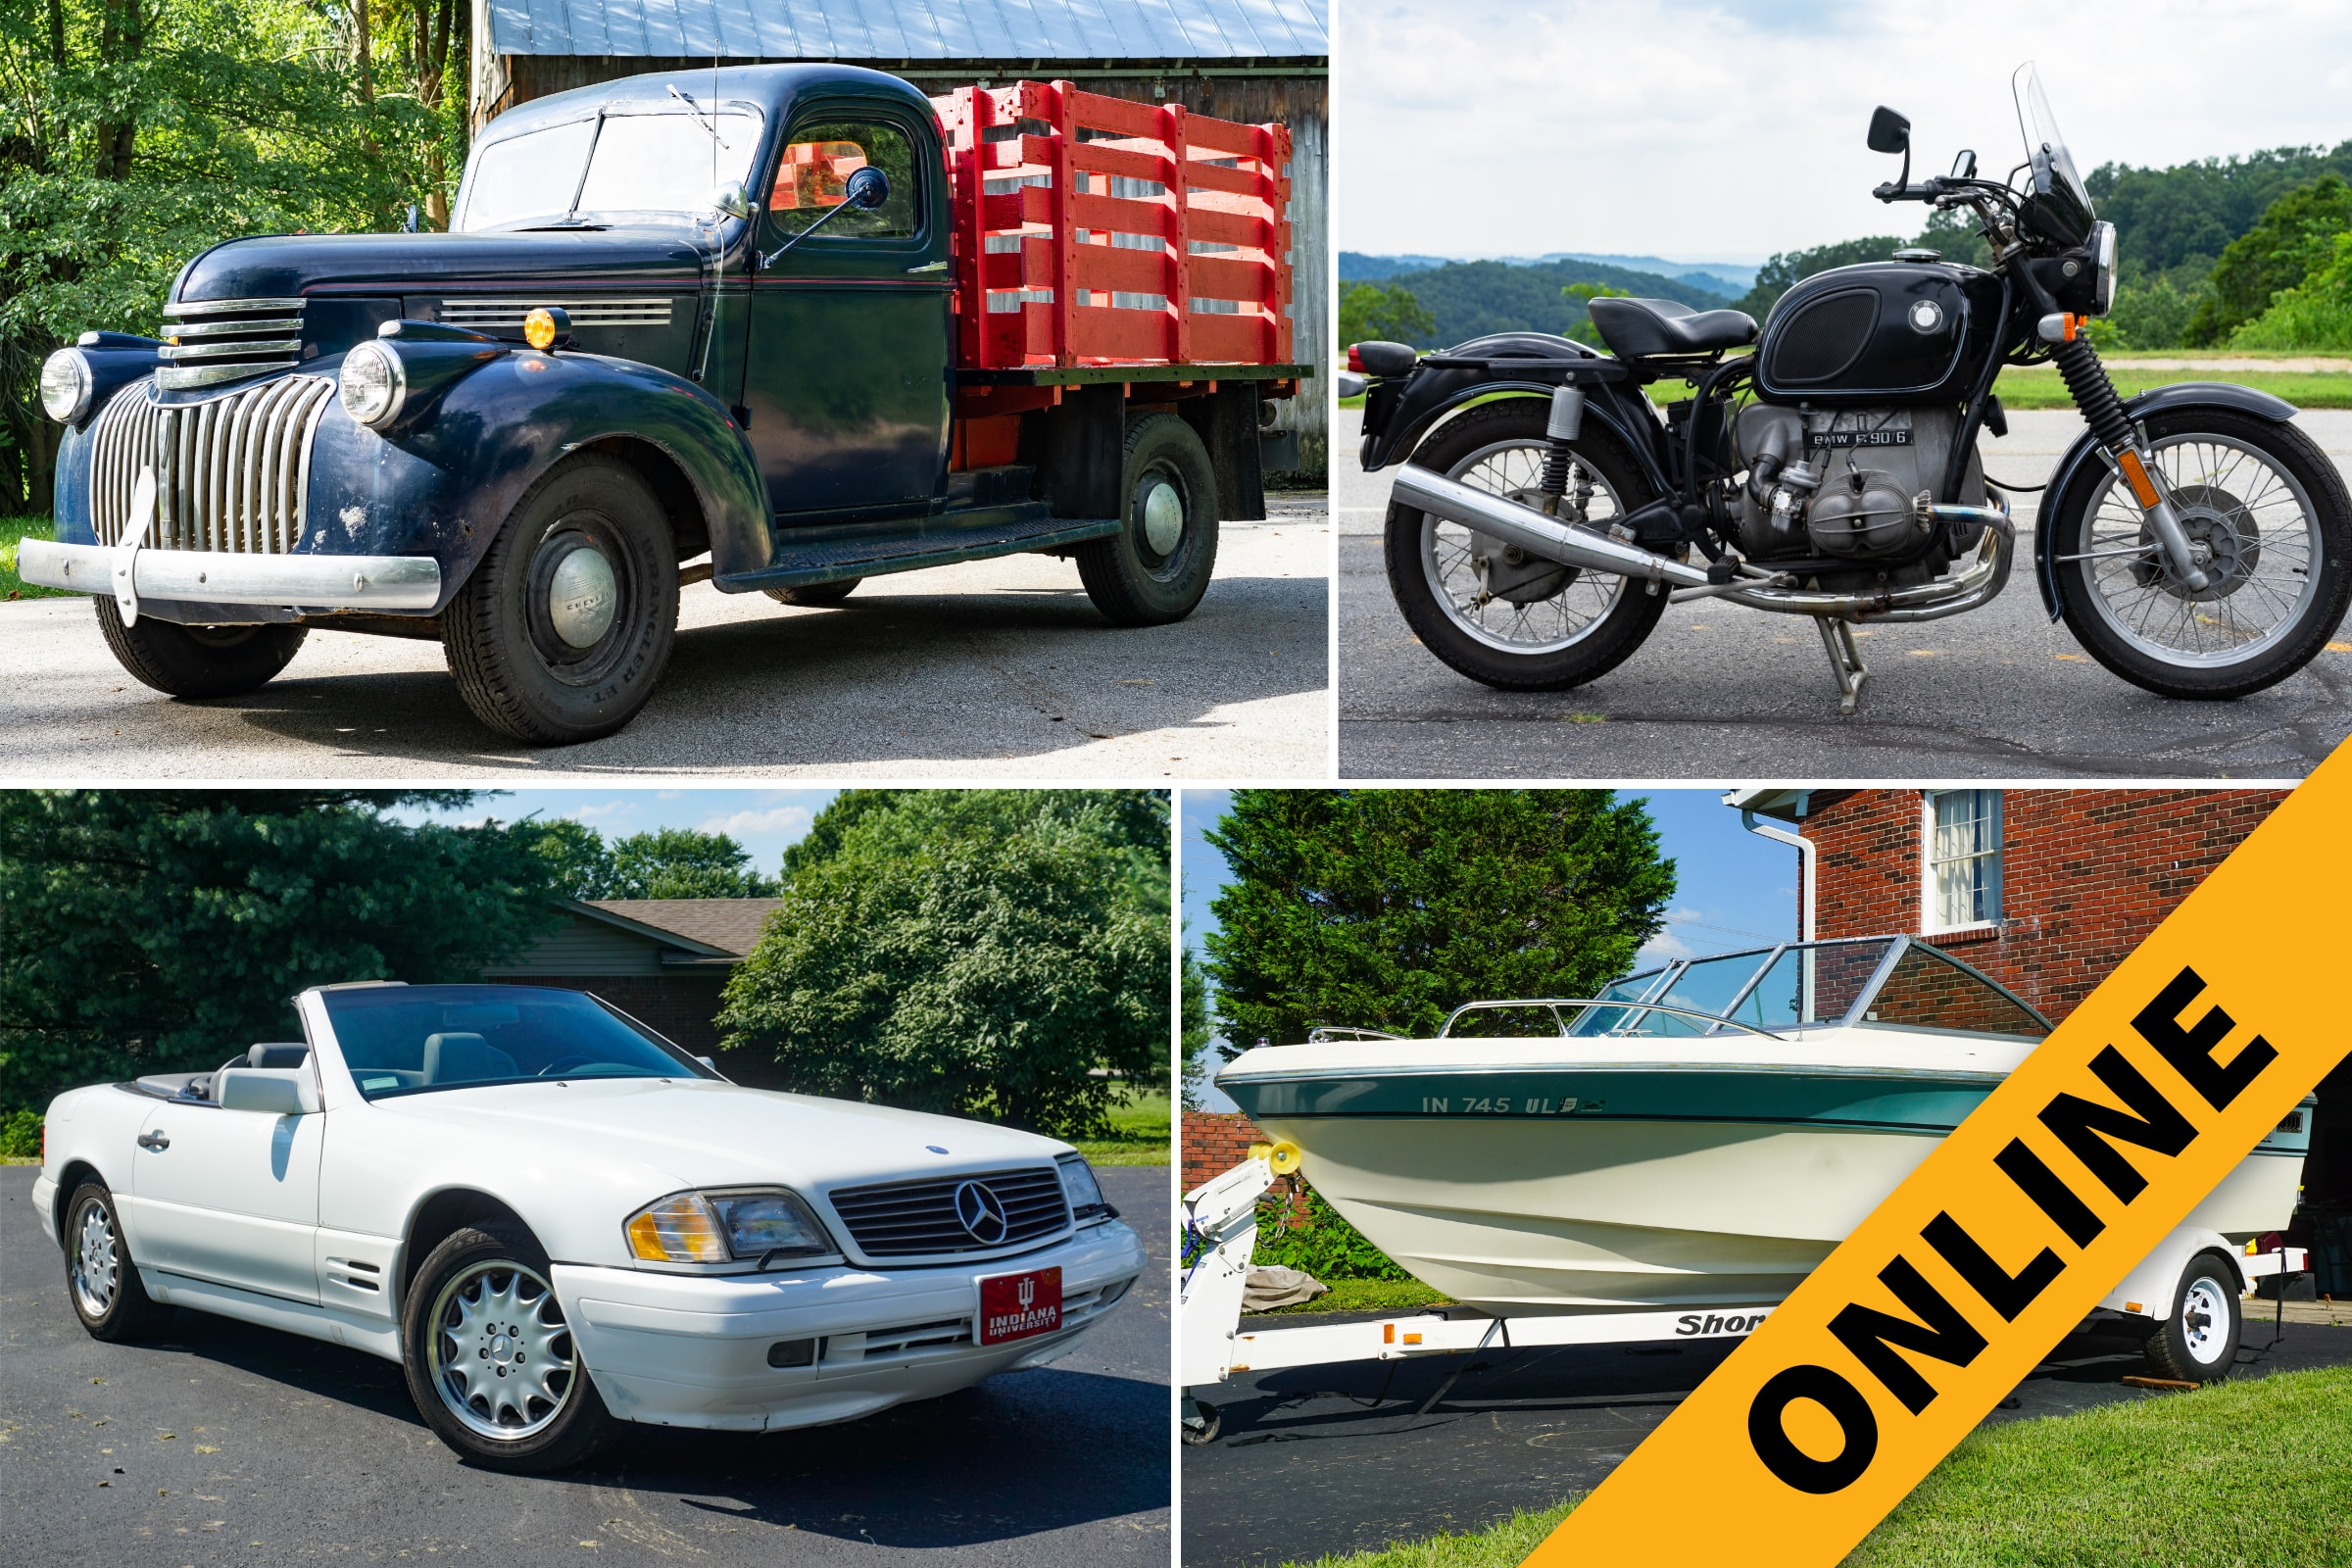 073019 Vehicles Online Featured Collage Overlay